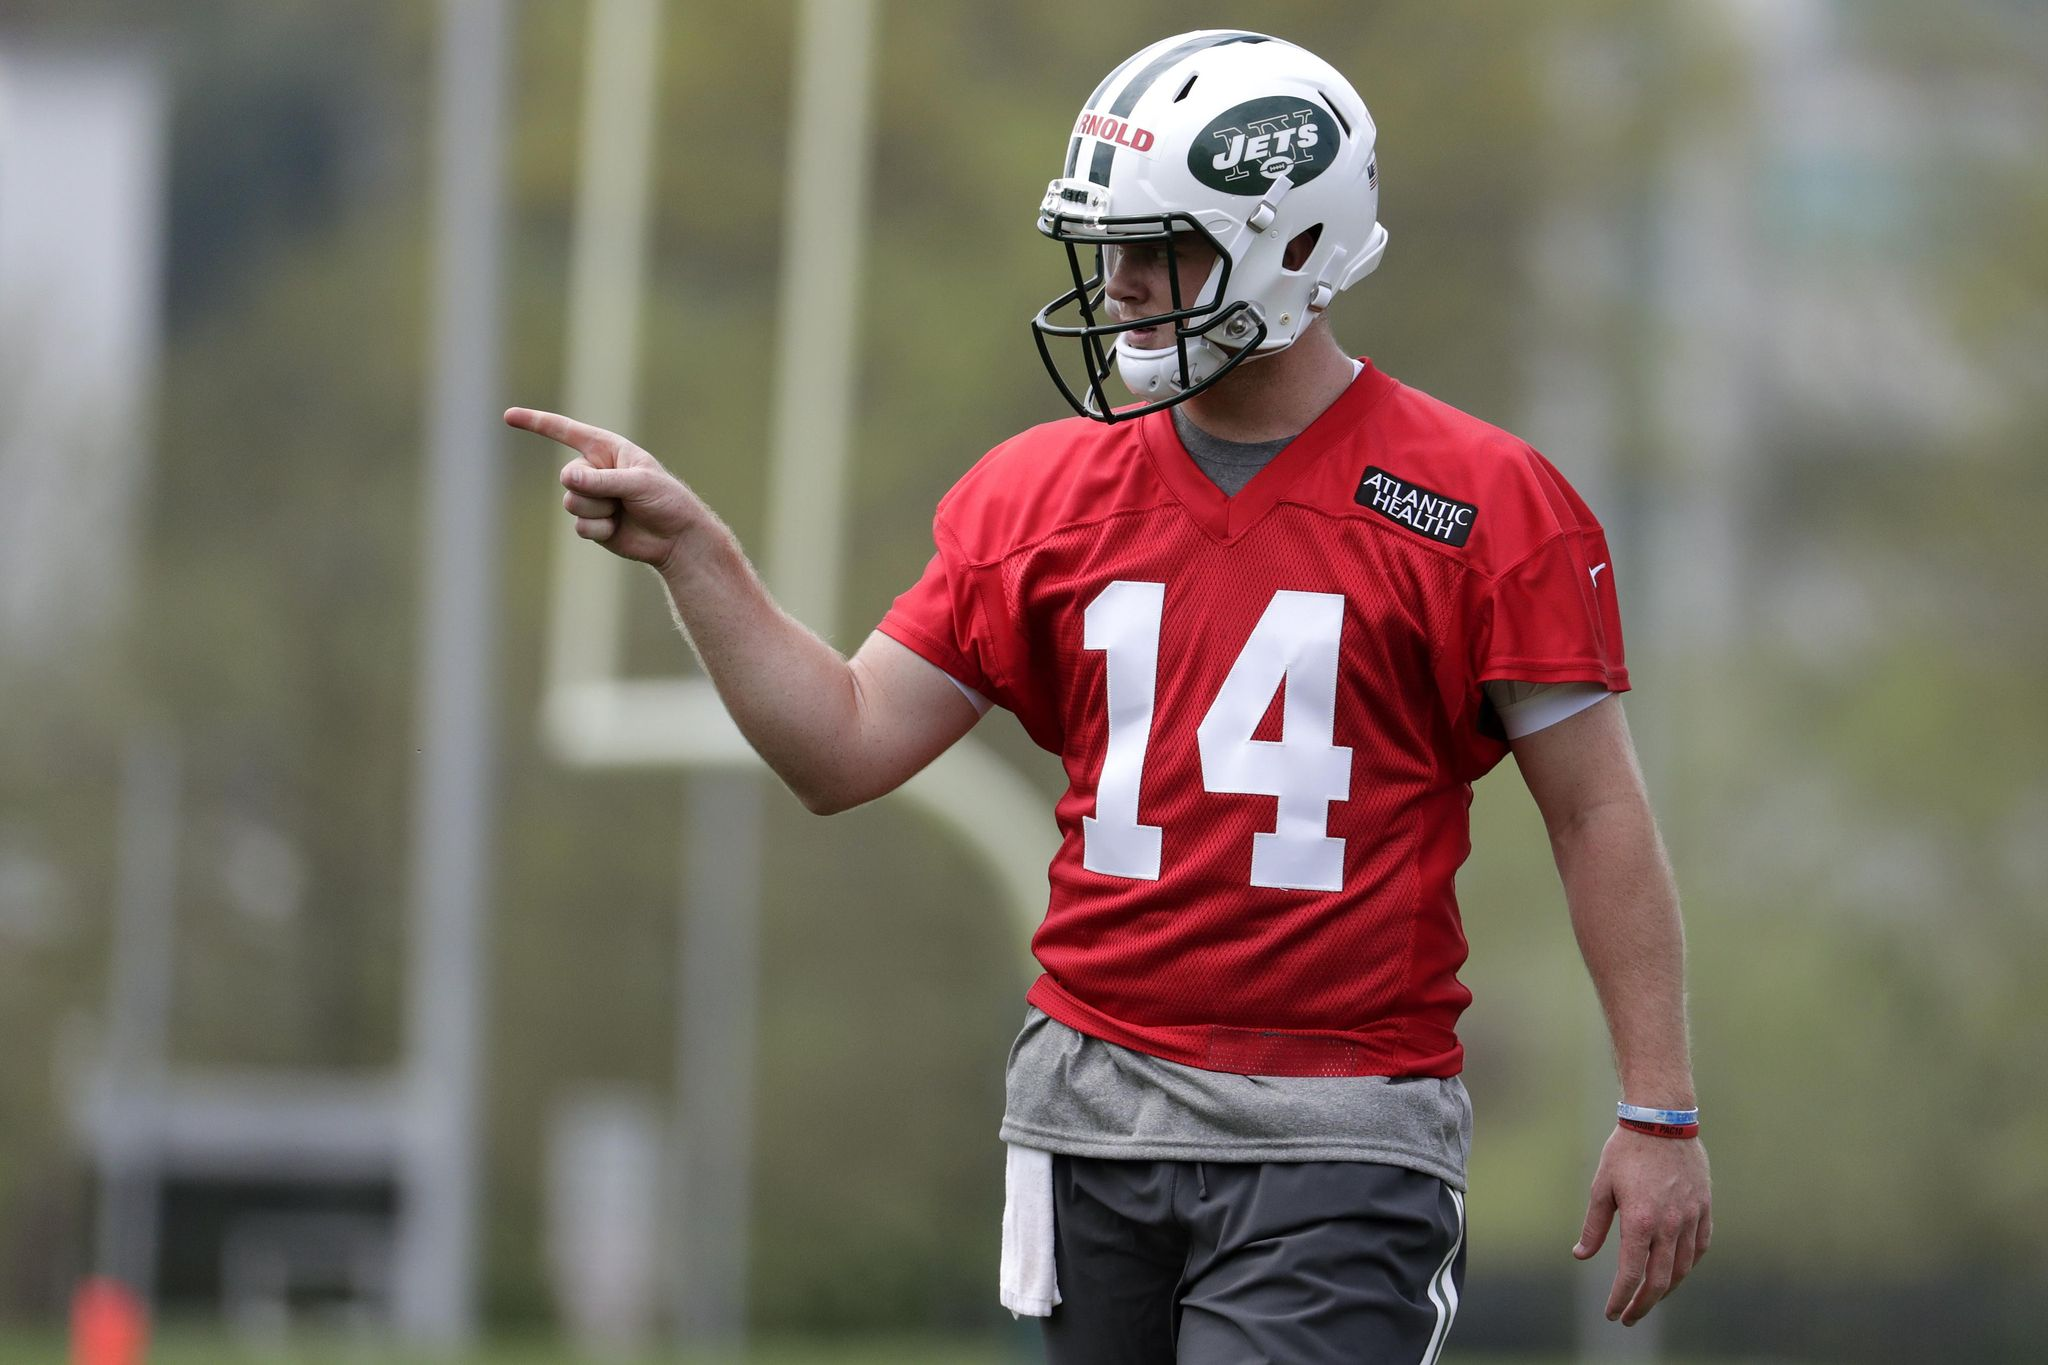 Jets_rookie_camp_football_21596_s2048x1365